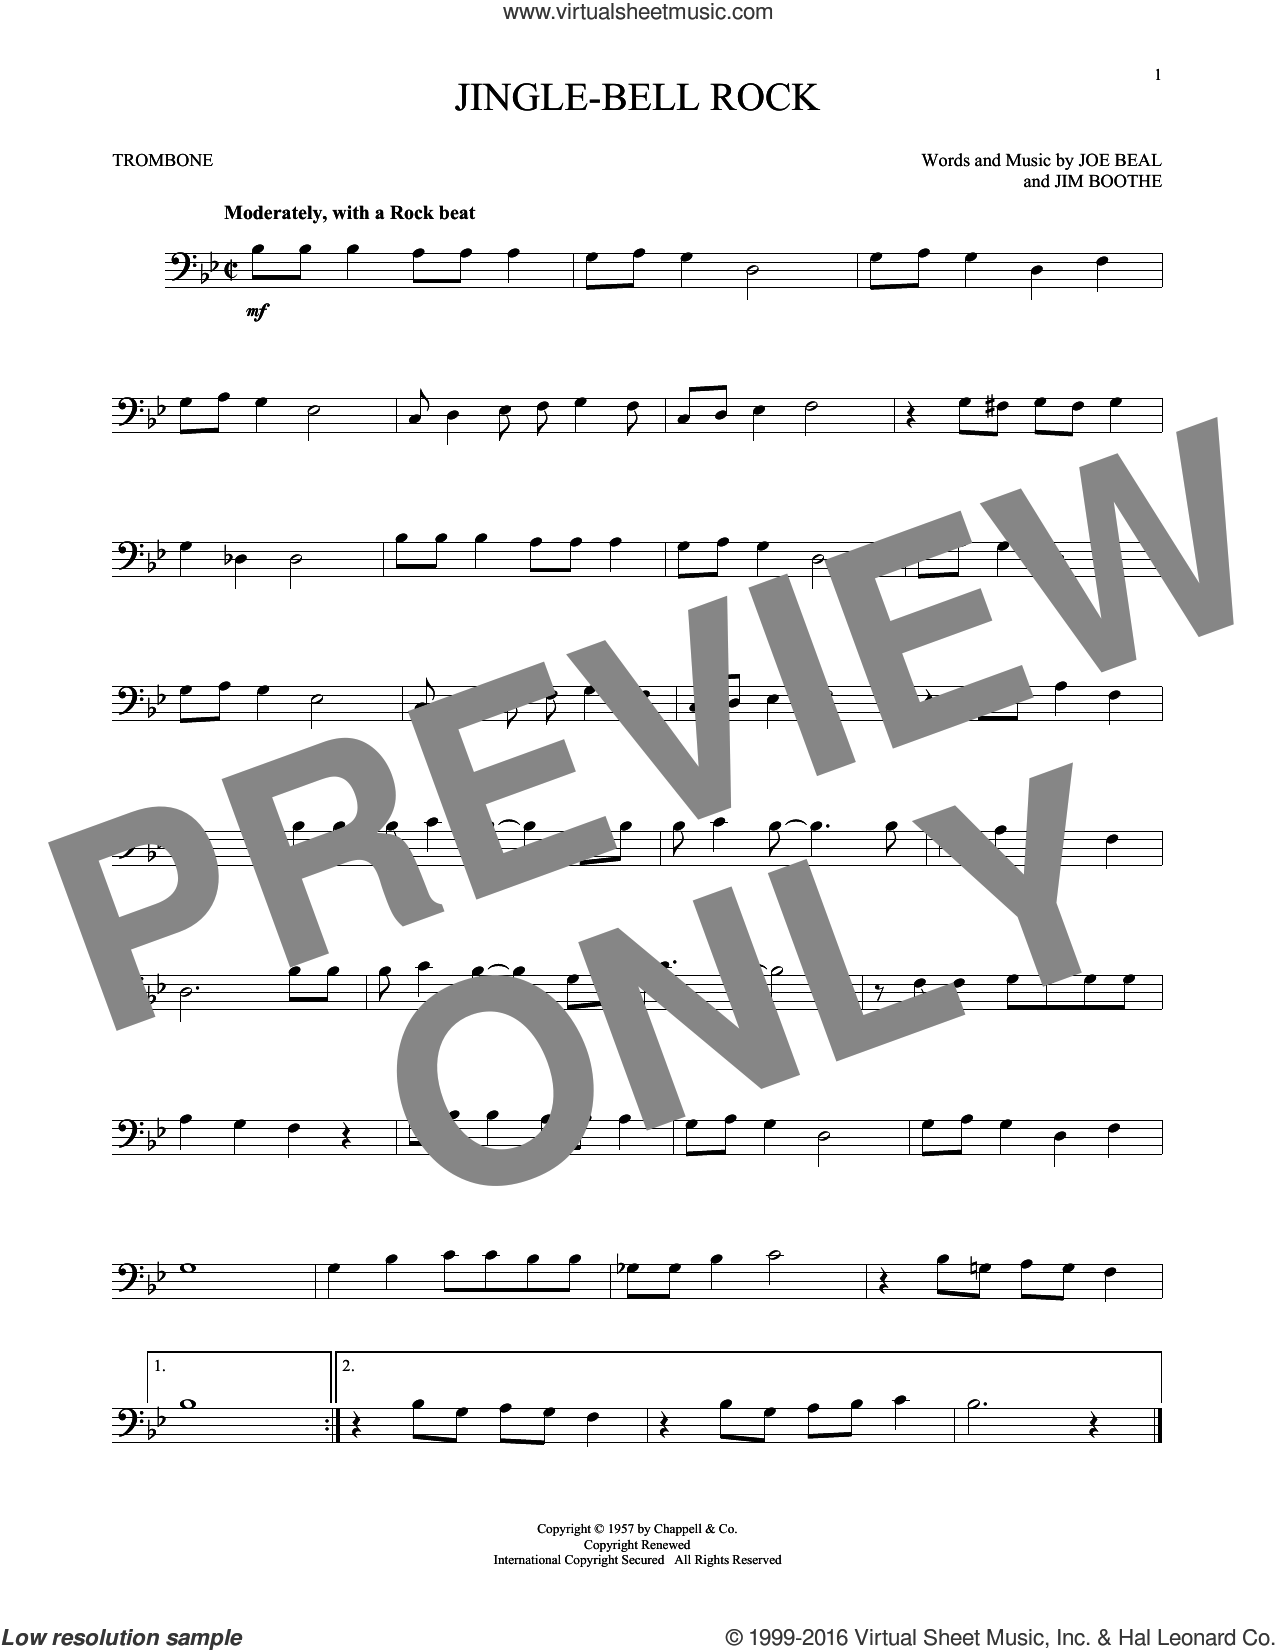 Jingle Bell Rock sheet music for trombone solo by Bobby Helms, Aaron Tippin, Jim Boothe and Joe Beal, intermediate skill level